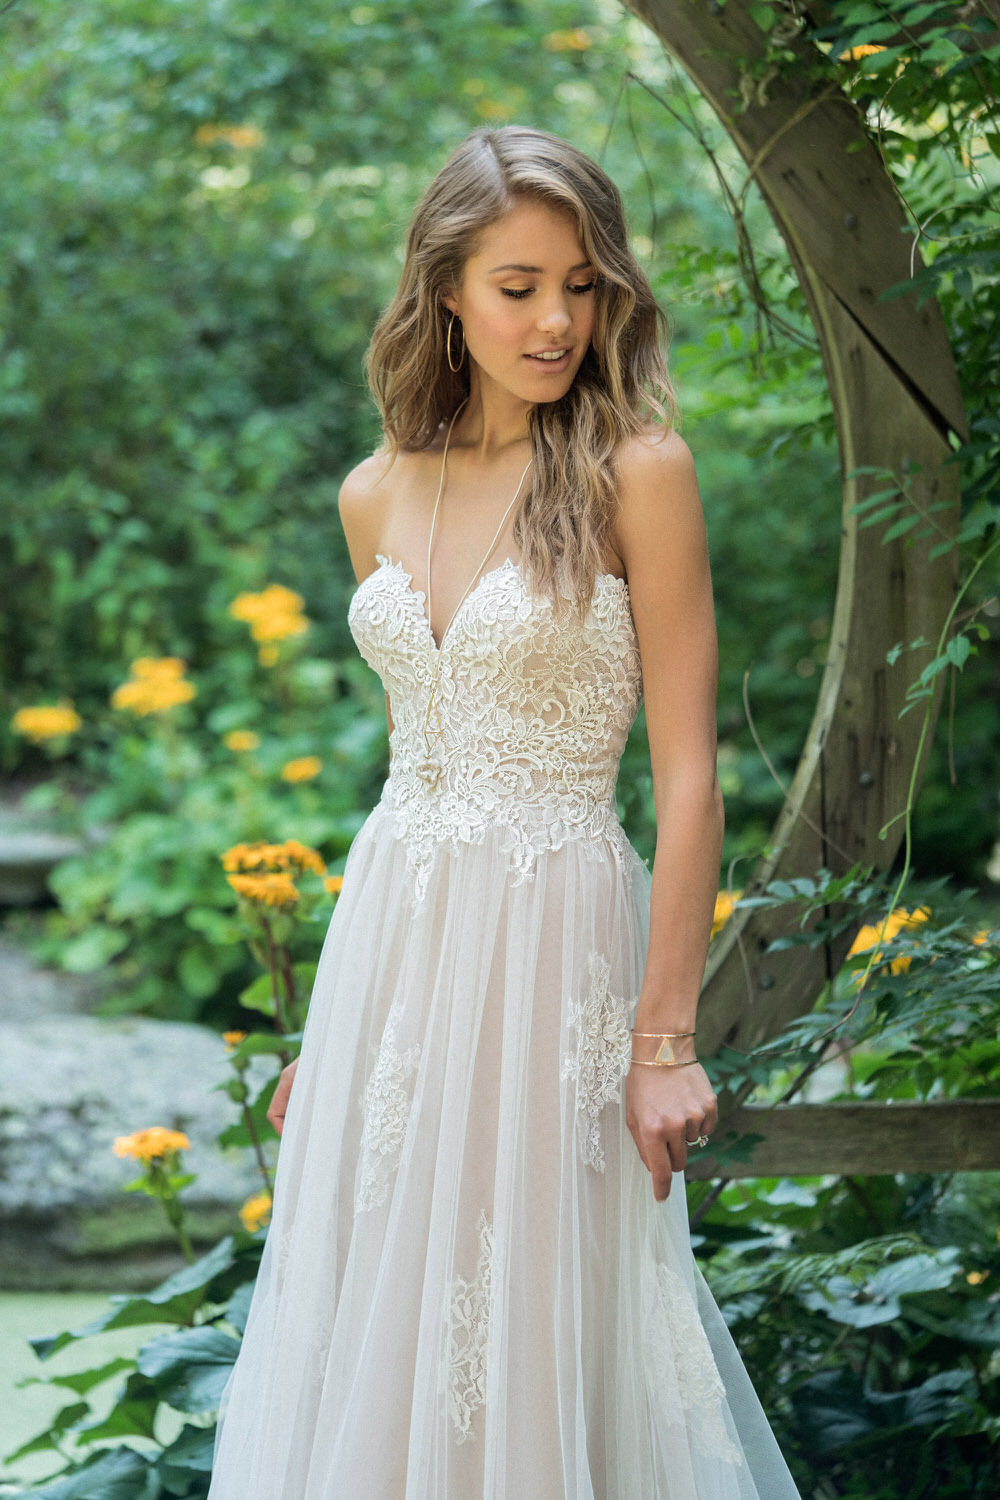 Niedlich West Brautkleid Galerie - Brautkleider Ideen ...